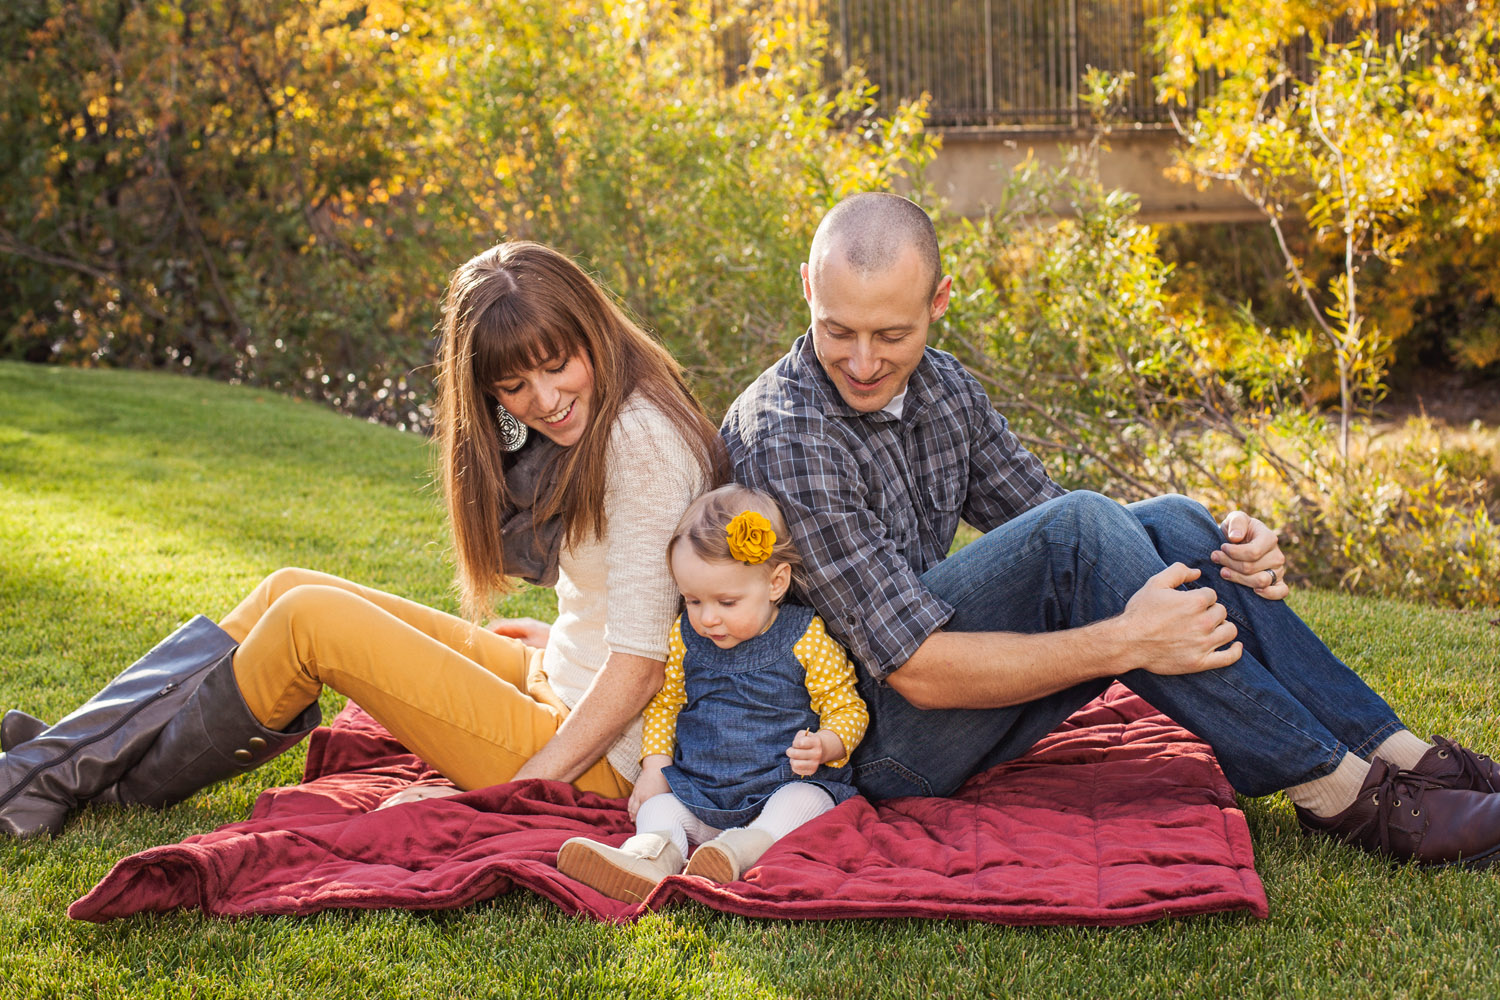 Northern_Utah_Photographer-WatkinsFamilyPhotos-3.jpg